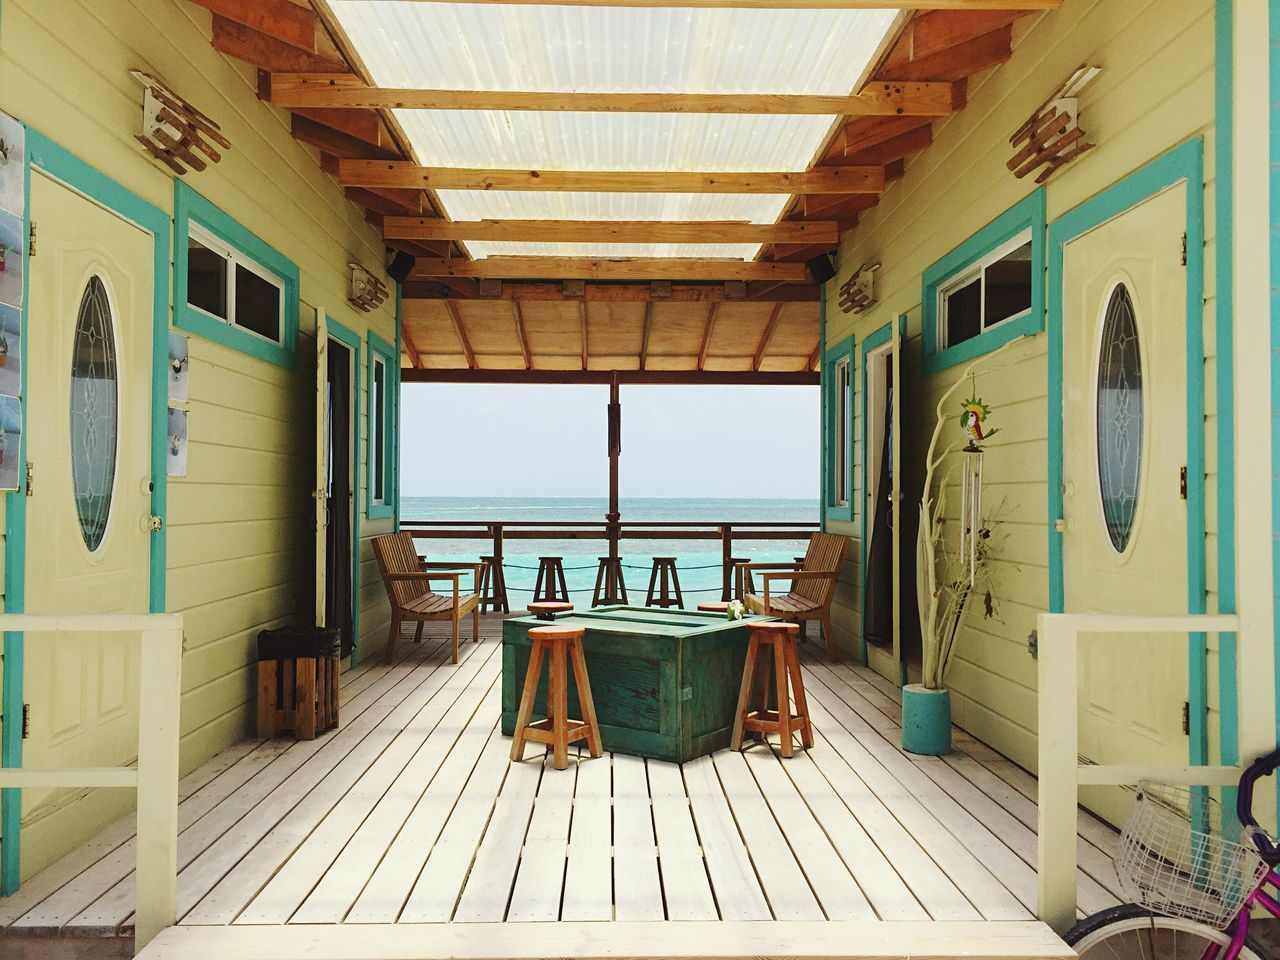 Caye Caulker Times Hanging Out Caye Caulker Belize  Belize It Travel Photography Cafe Time Relaxing